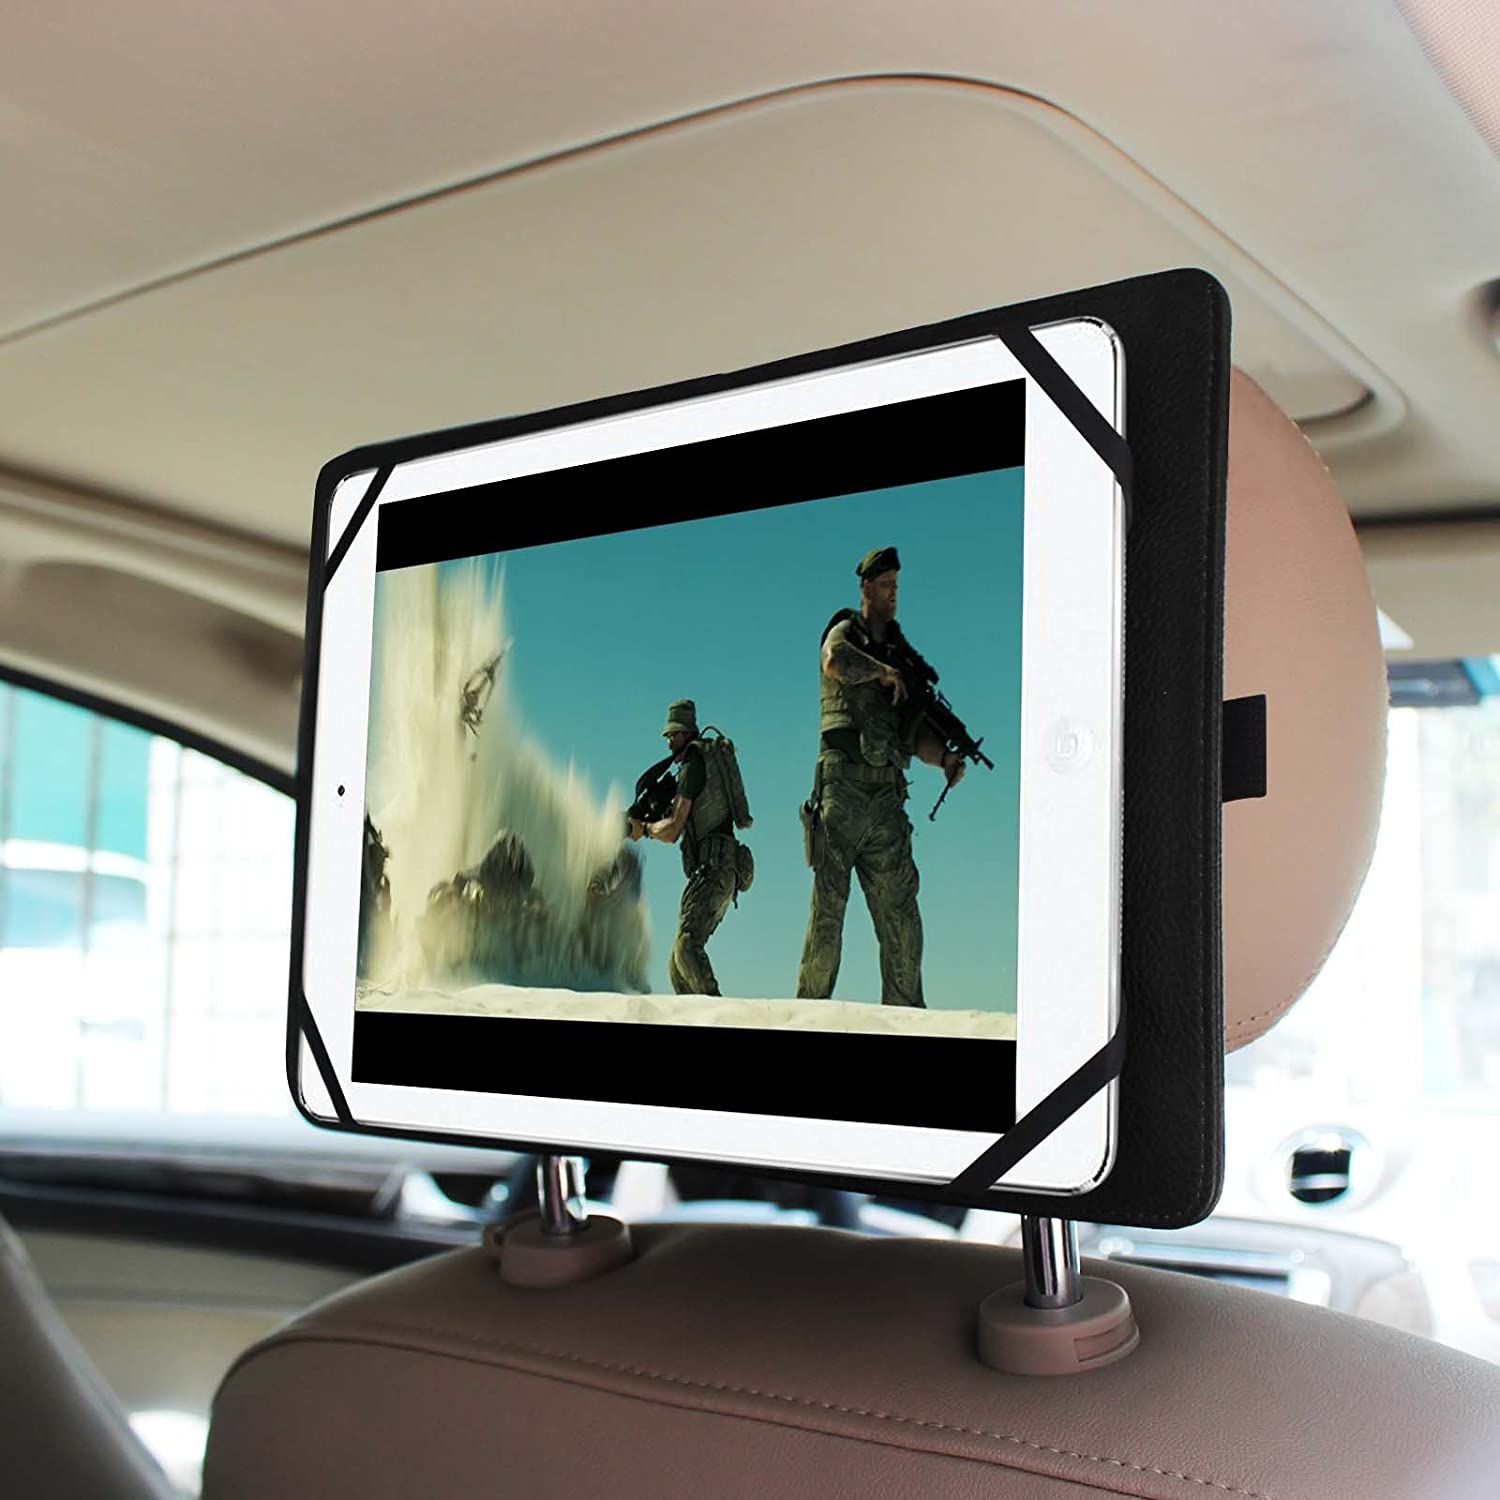 Fintie Universal Car Headrest Mount Holder for 7-Inch to 11-Inch ...